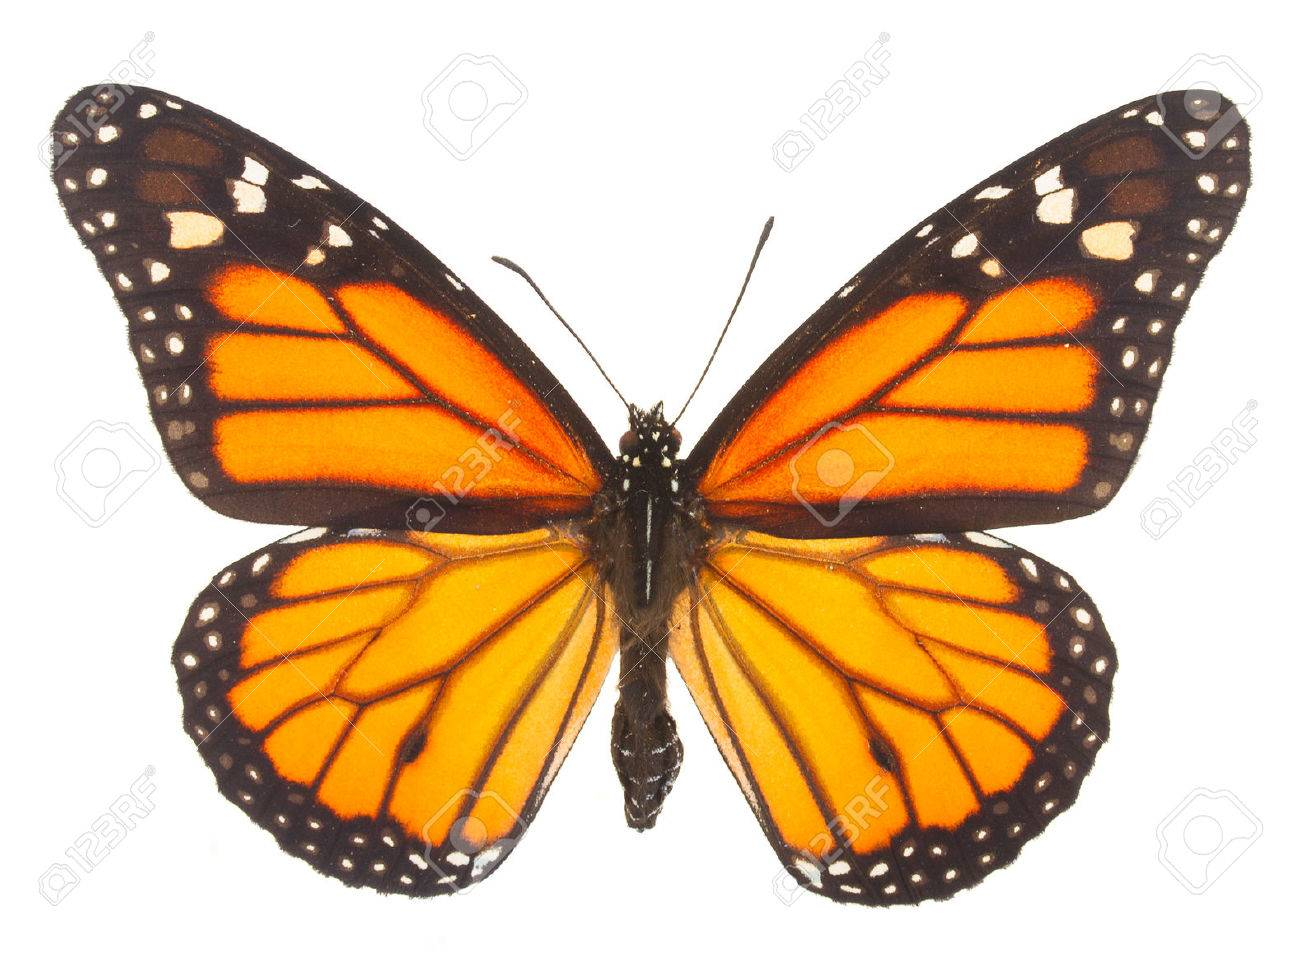 0067d343b Orange monarch butterfly isolated on white background Stock Photo - 46392261